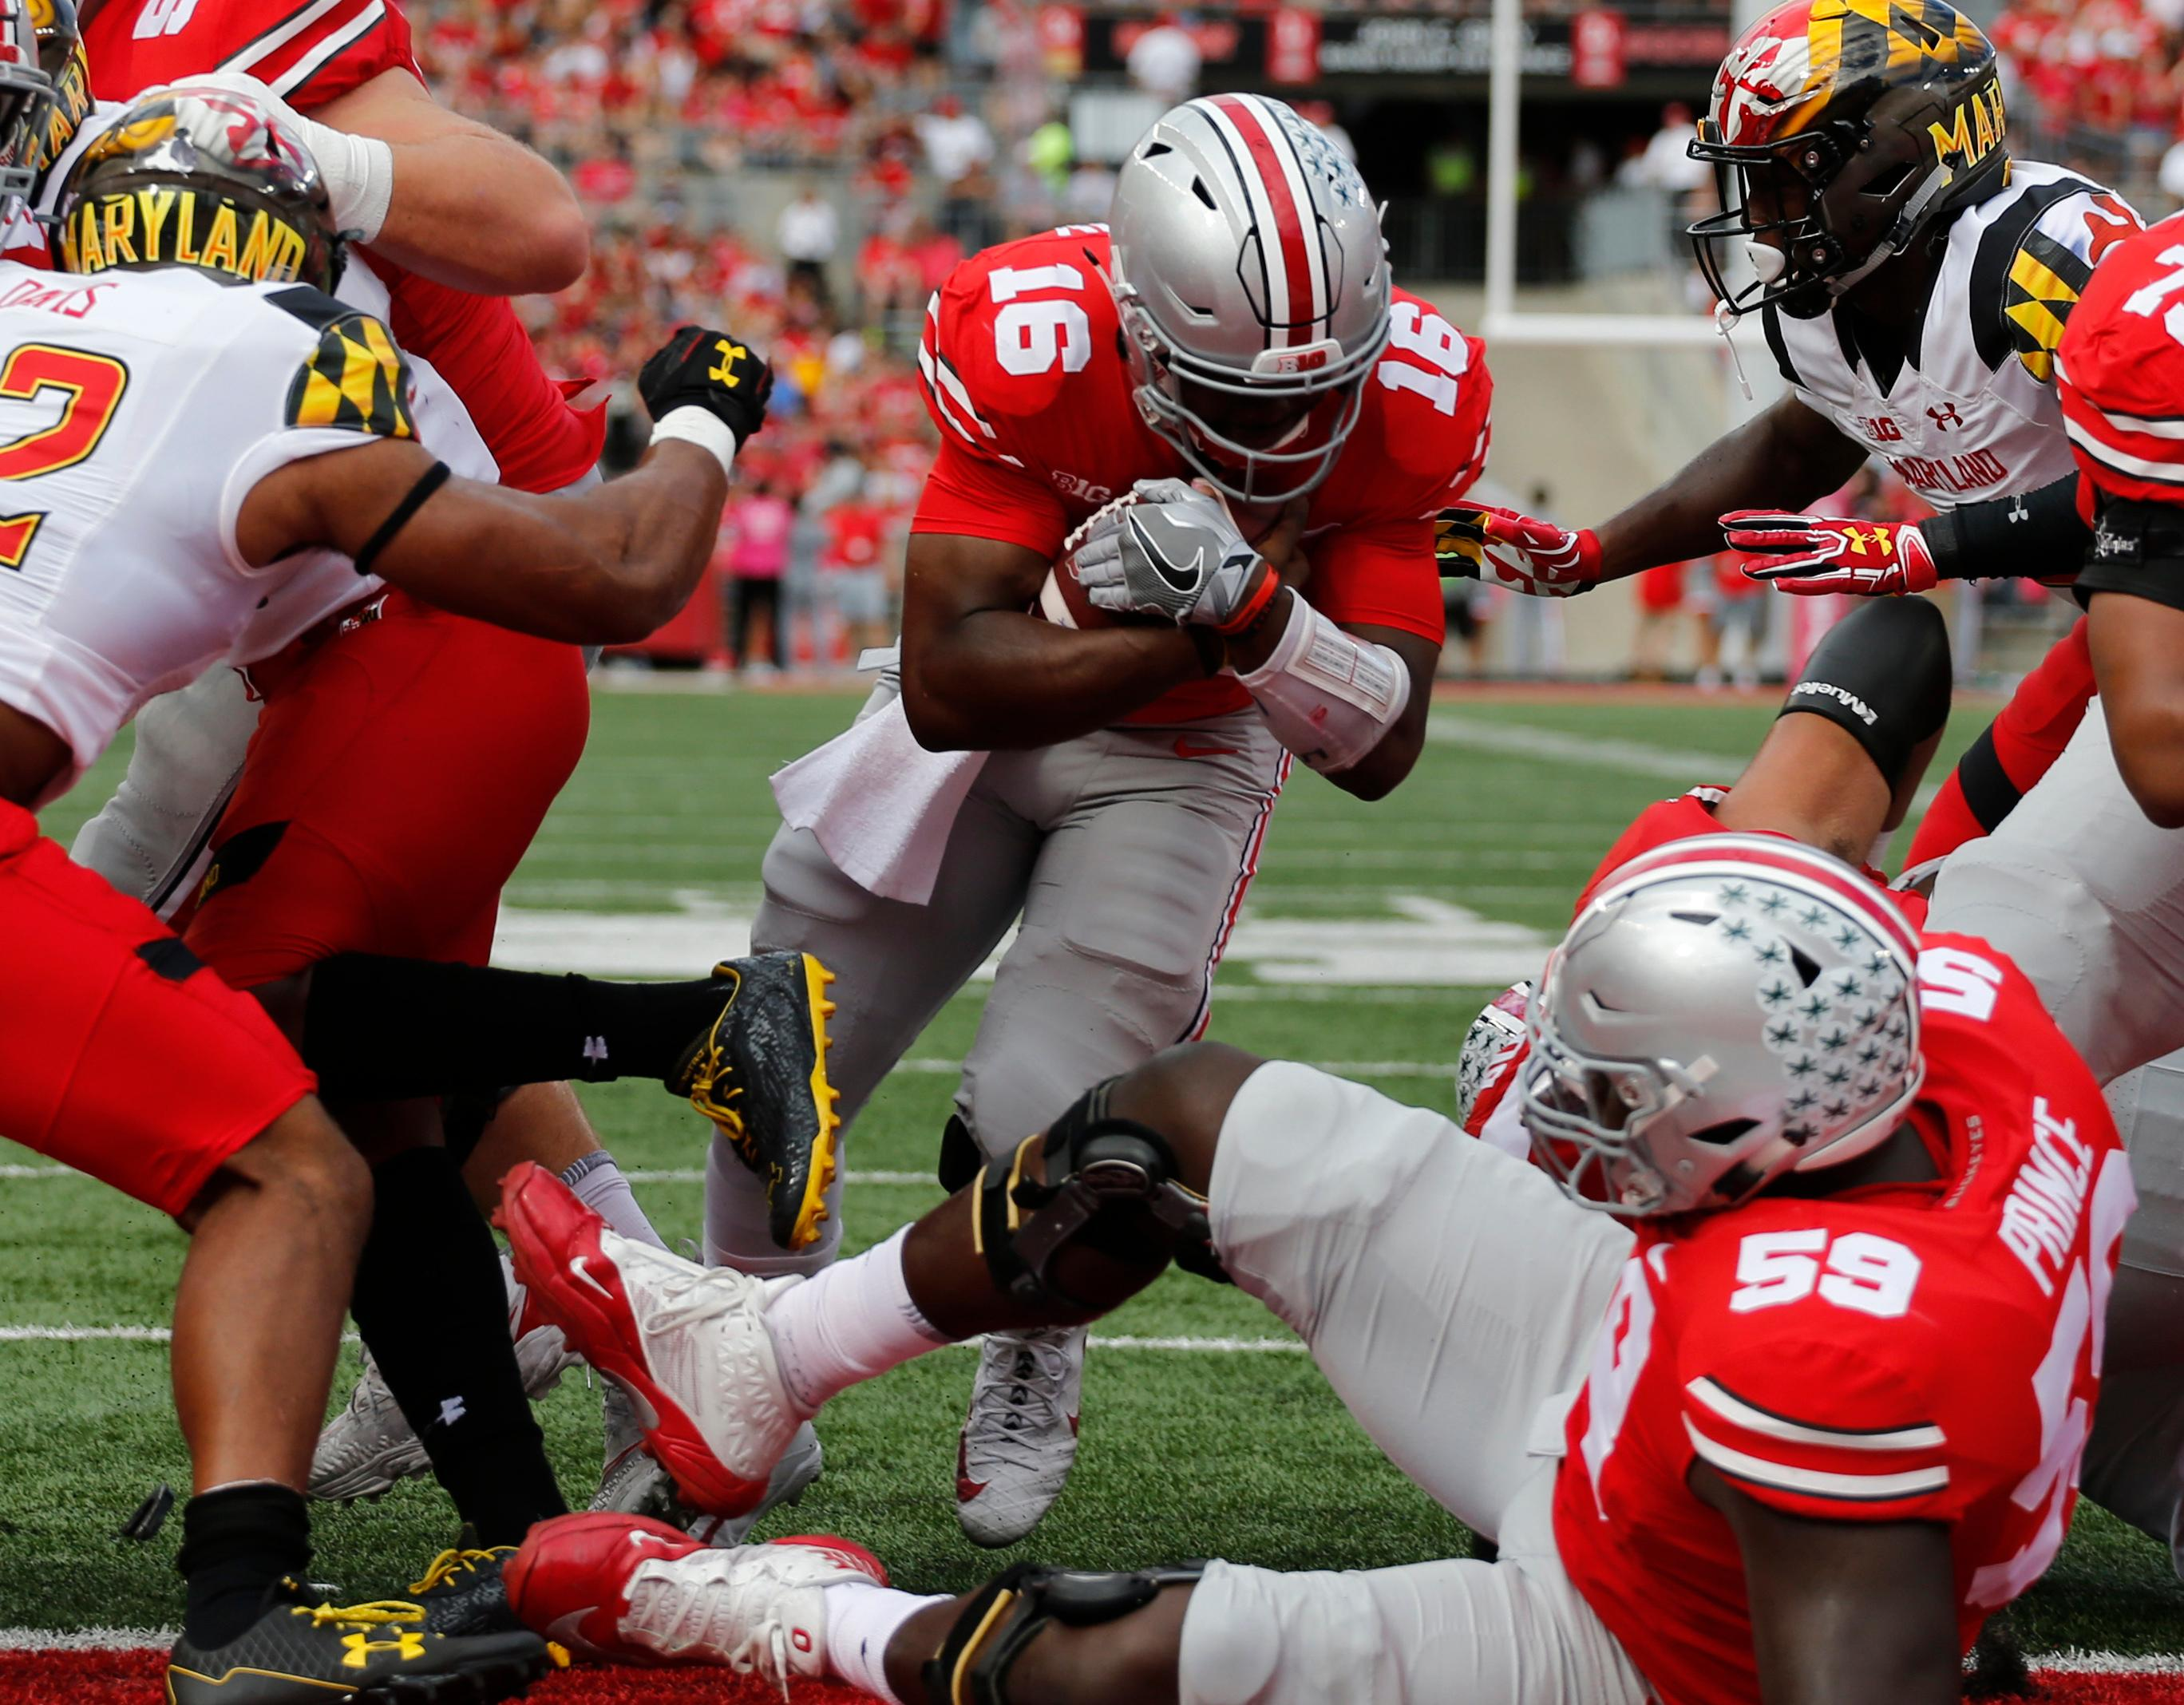 Ohio State quarterback J.T. Barrett, center, scores a touchdown against Maryland during the first half of an NCAA college football game Saturday, Oct. 7, 2017, in Columbus, Ohio. (AP Photo/Jay LaPrete)